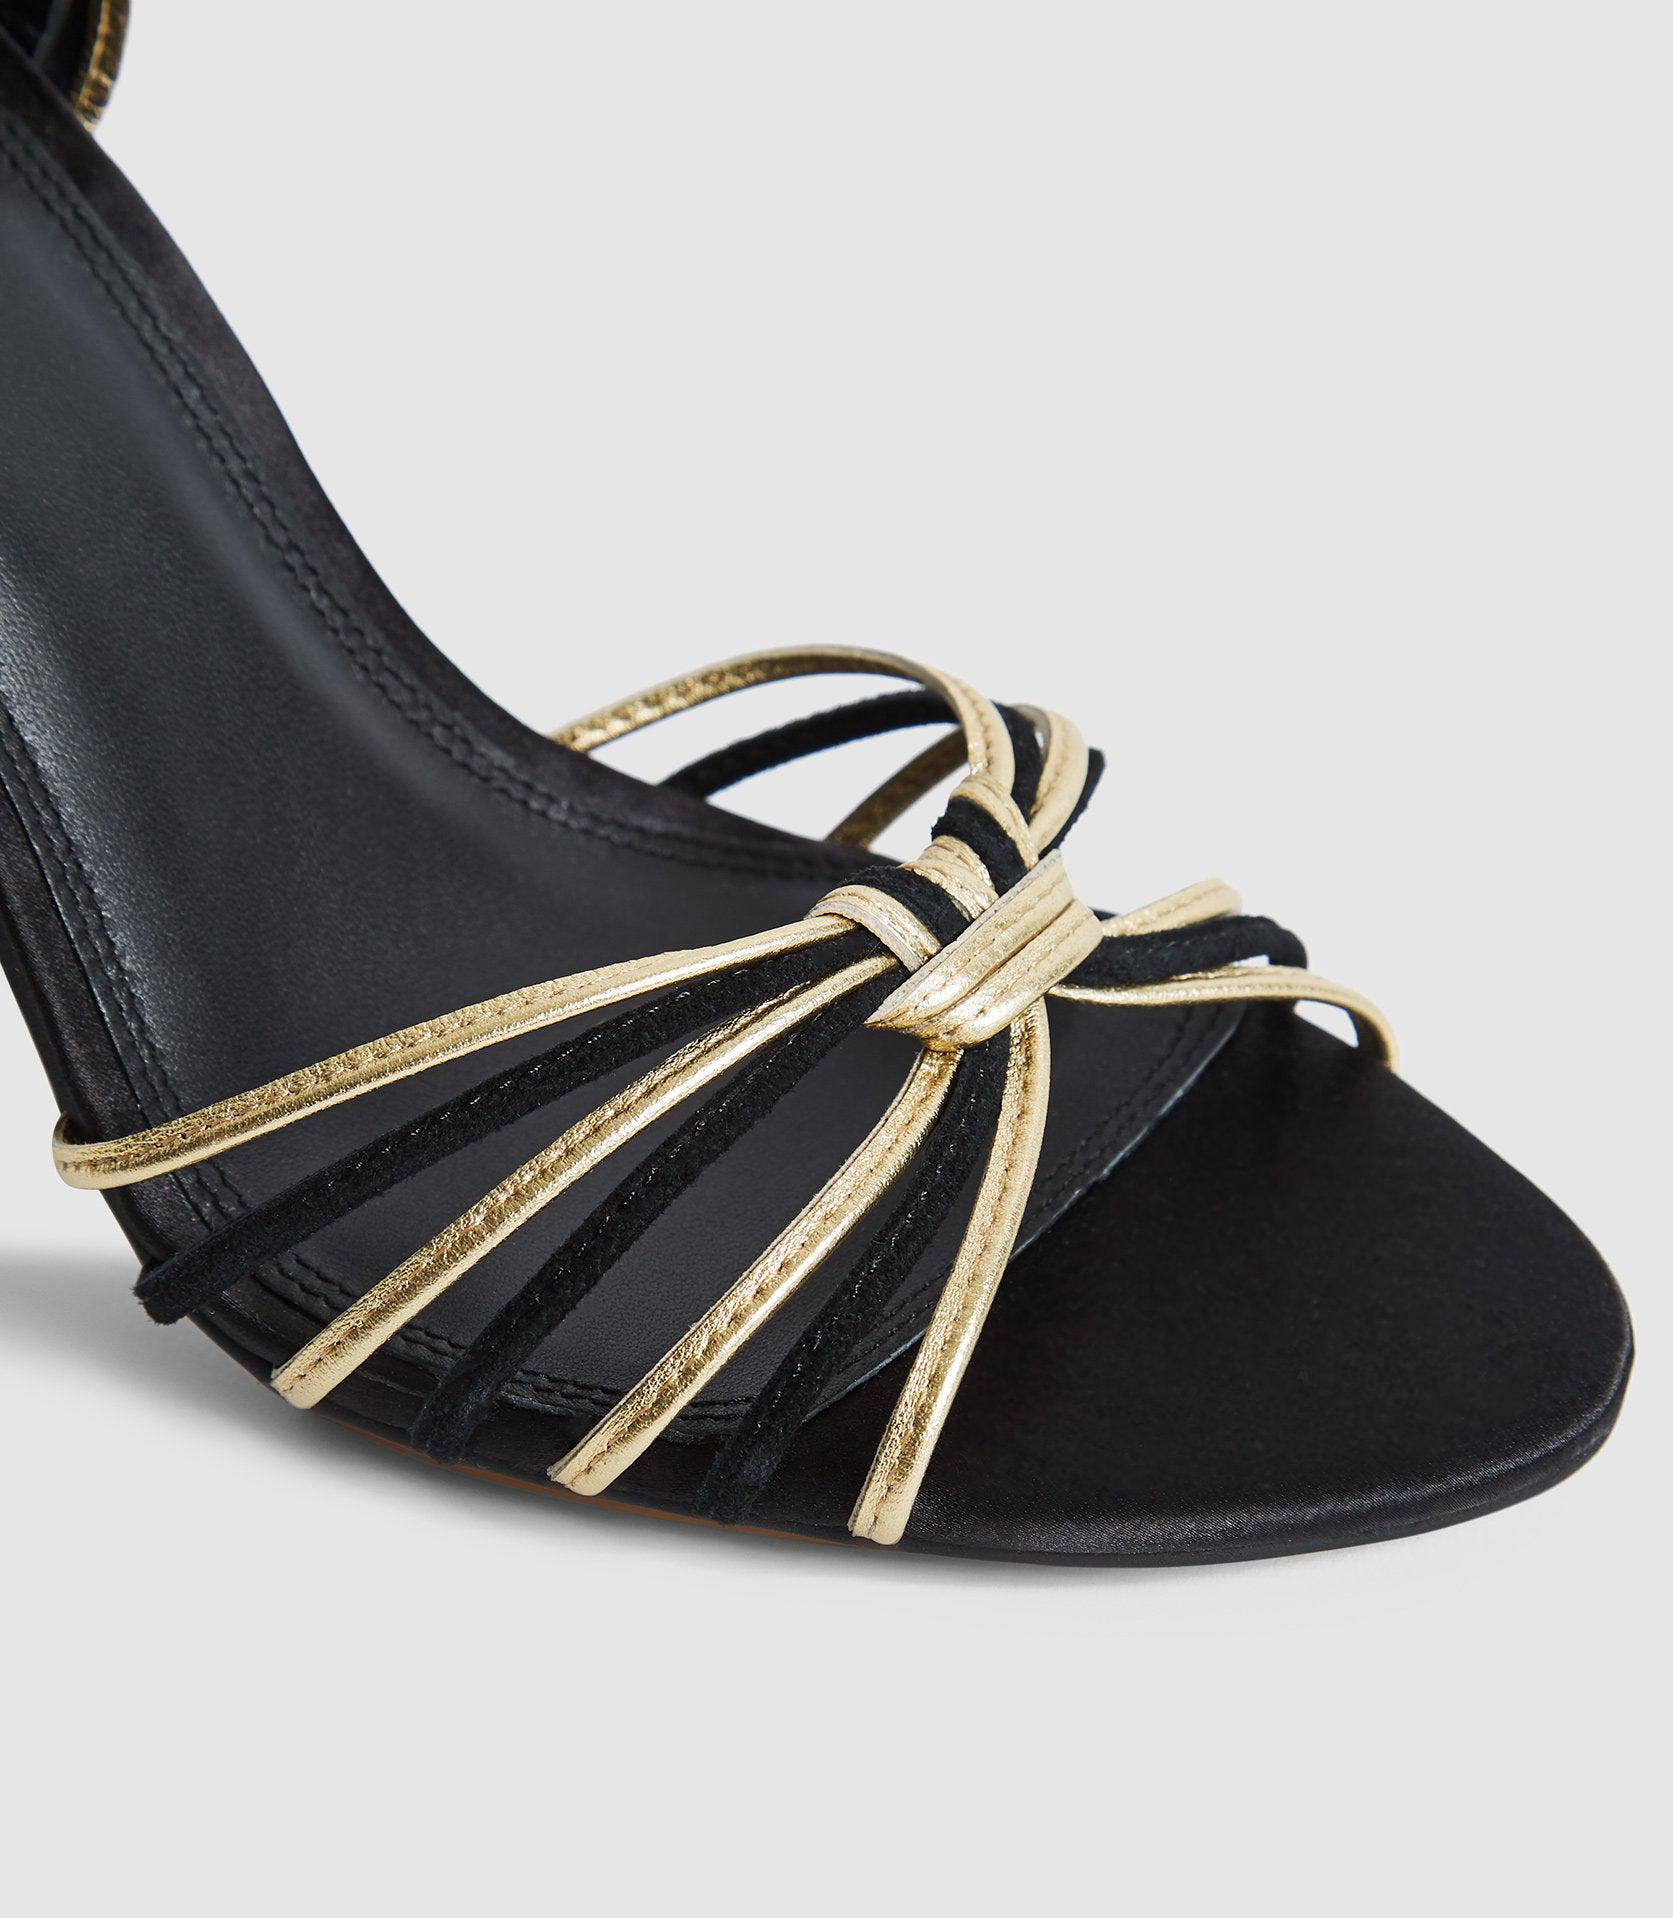 CASSIDY - STRAPPY HIGH HEELED SANDALS 4